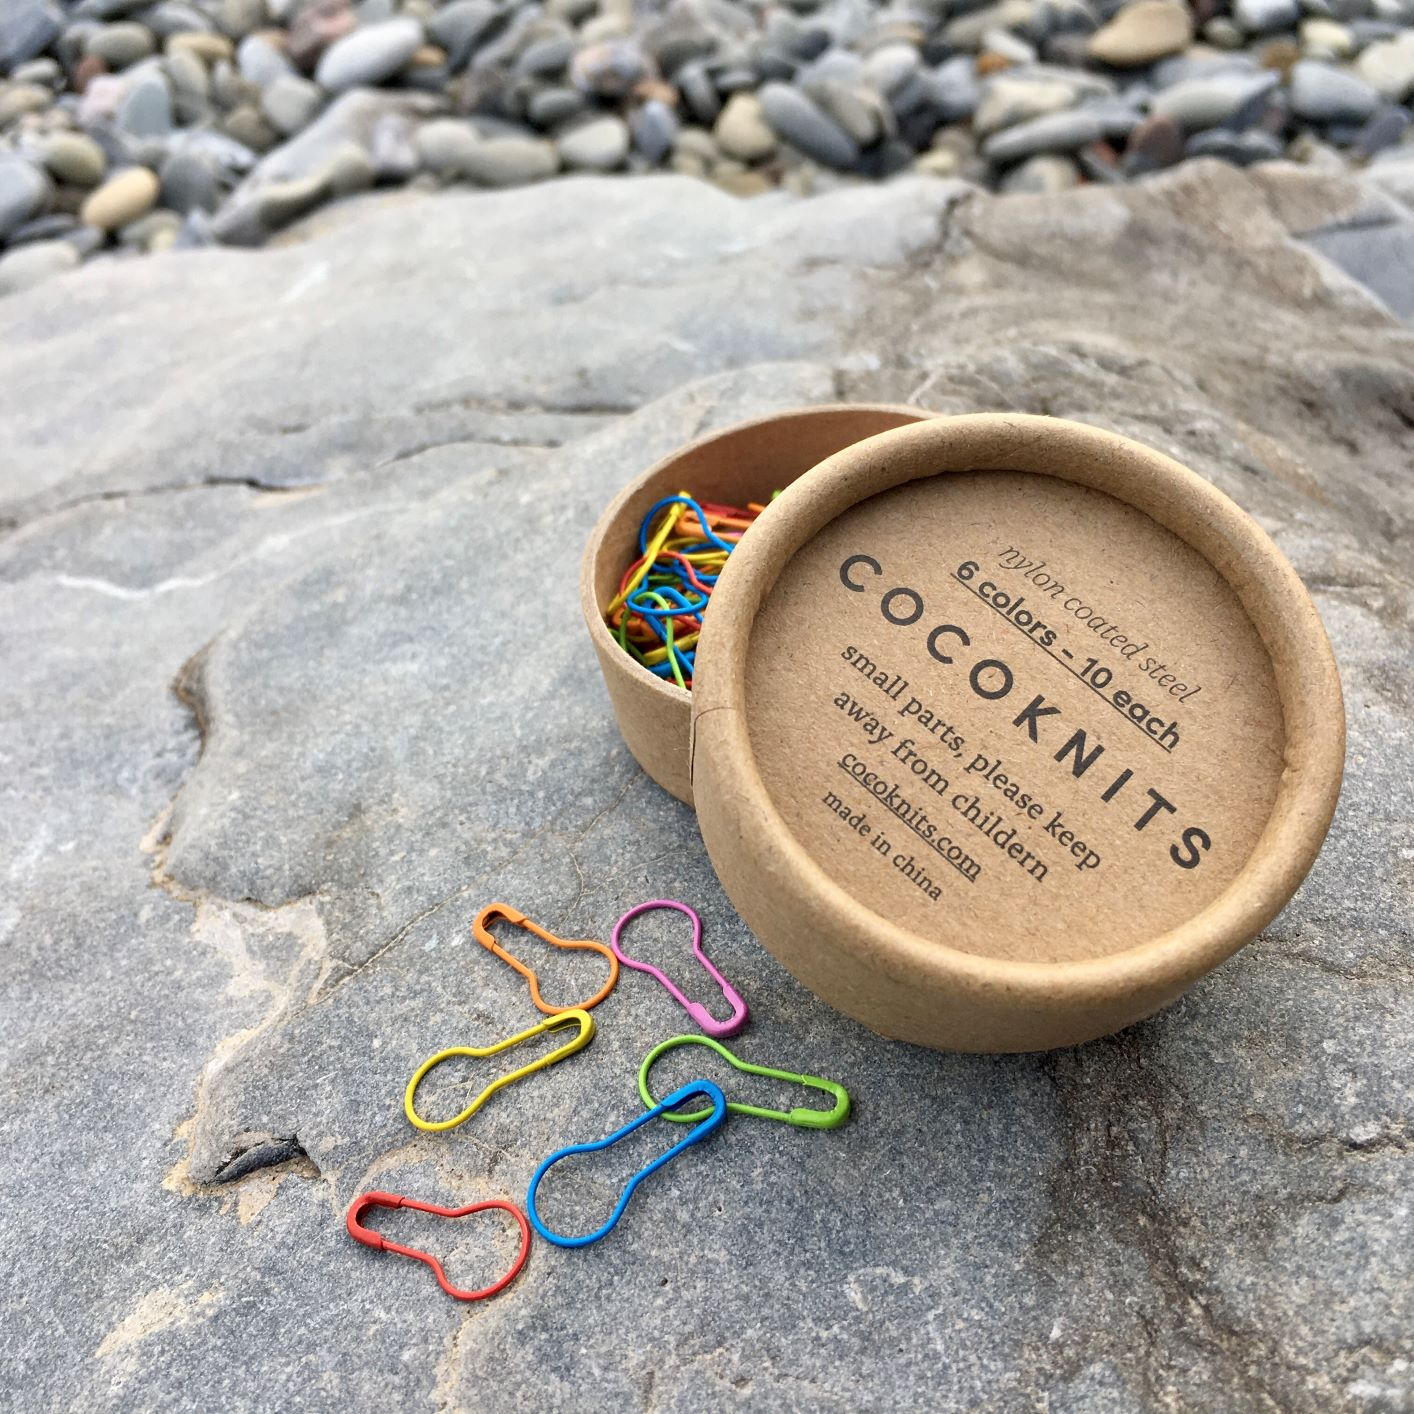 Cocoknits coloured opening stitch markers